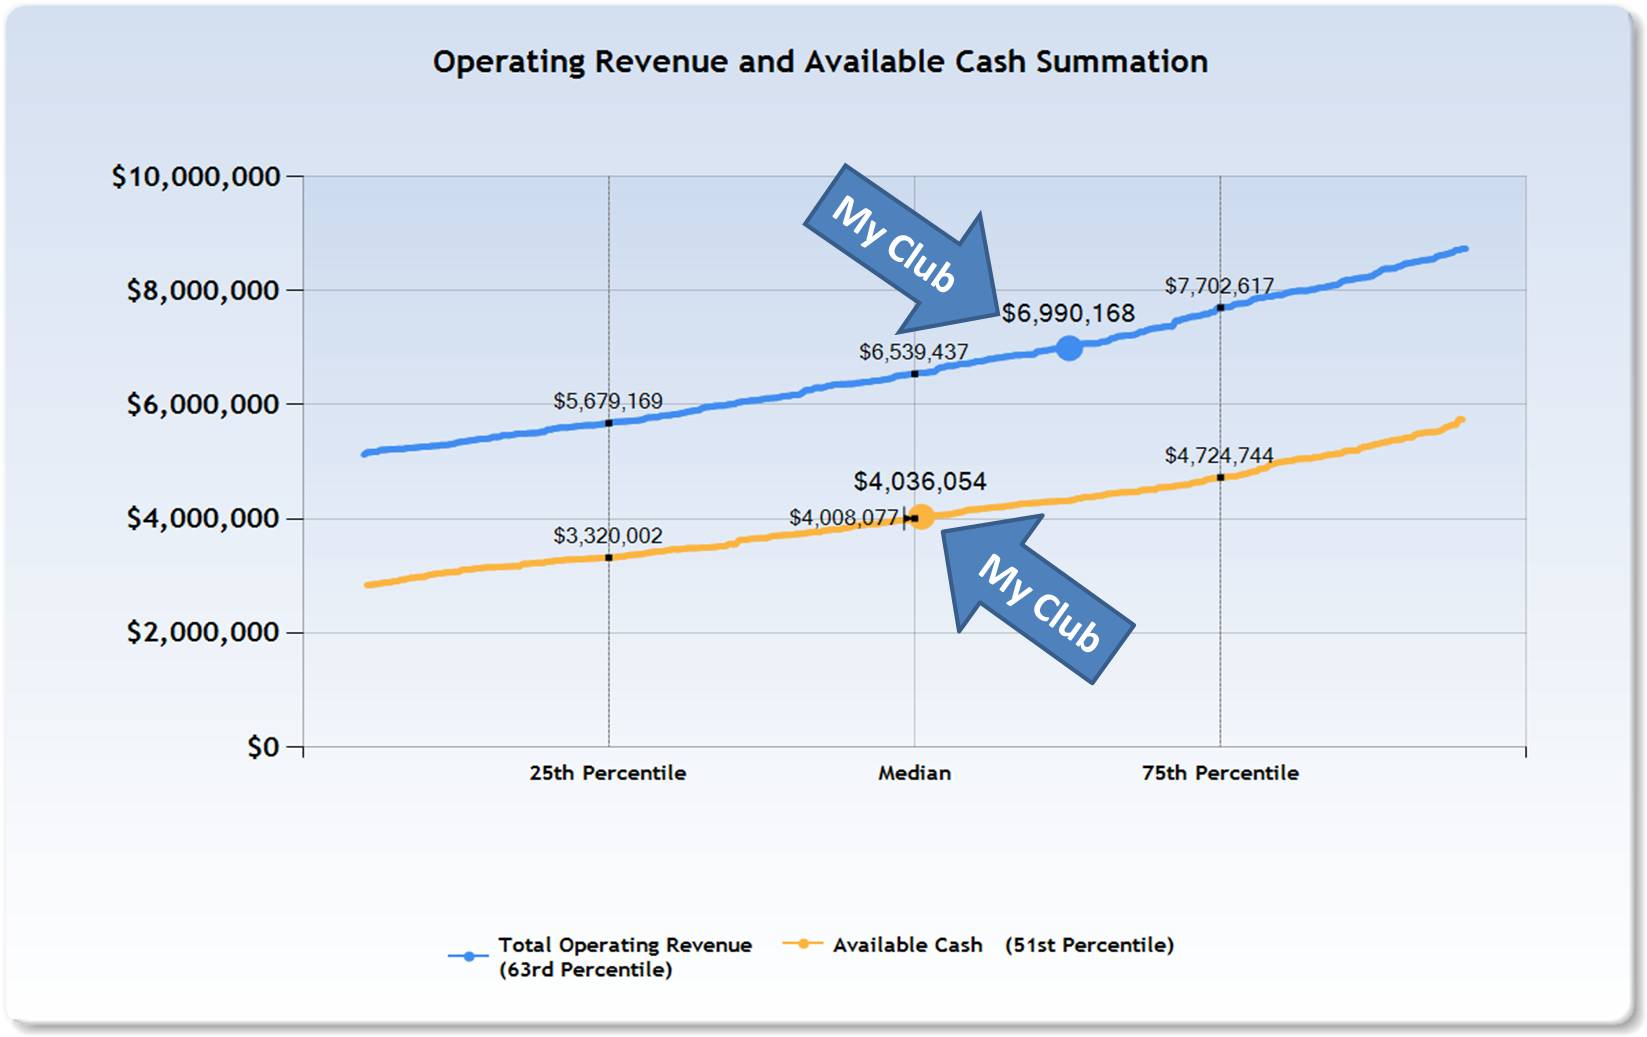 financial and operational performance metrics and benchmarks